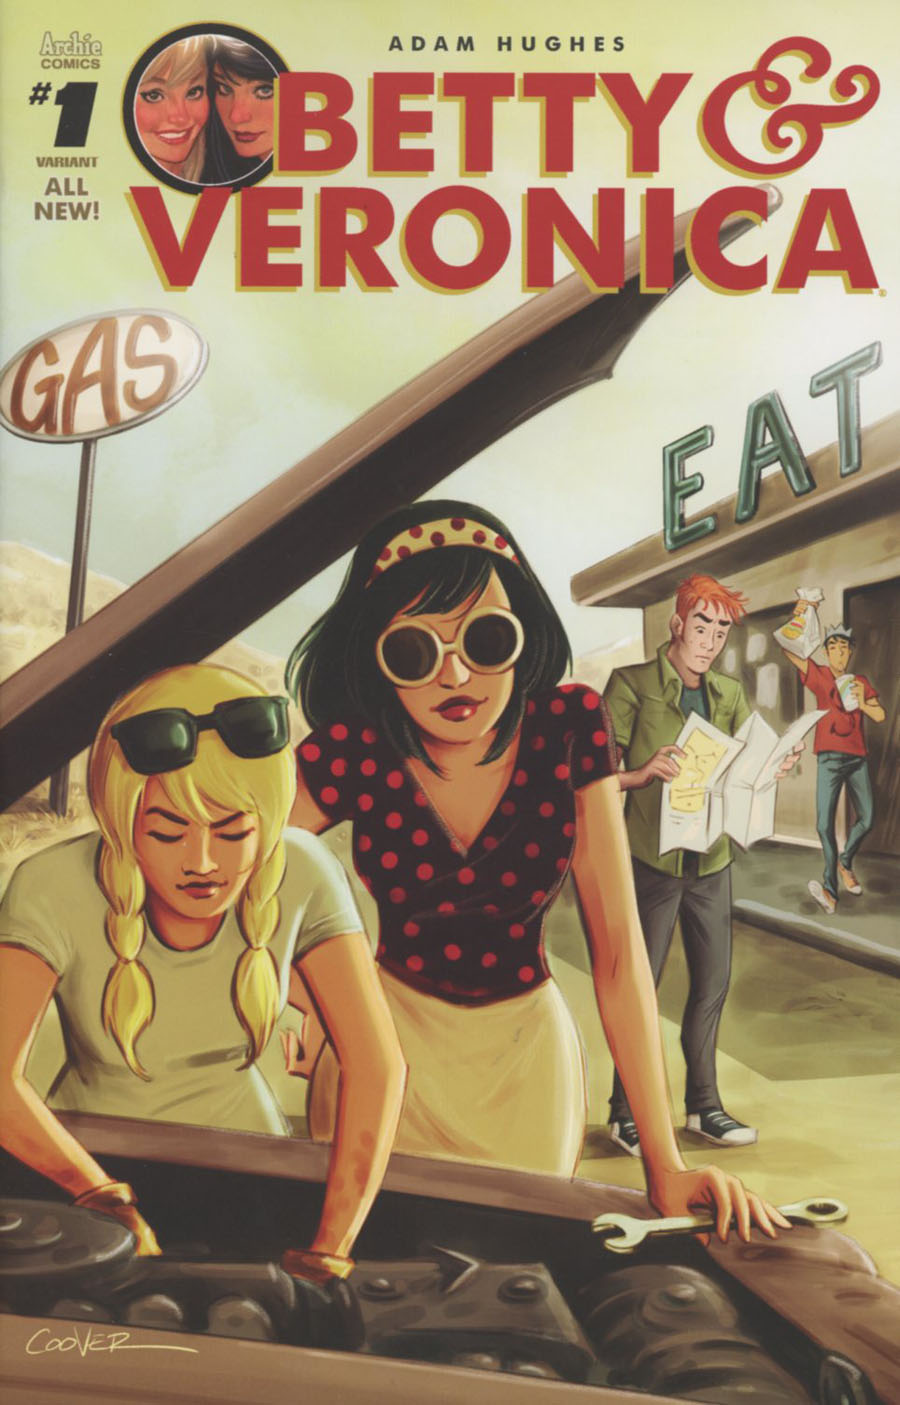 Betty & Veronica Vol 2 #1 Cover F Variant Colleen Coover Cover